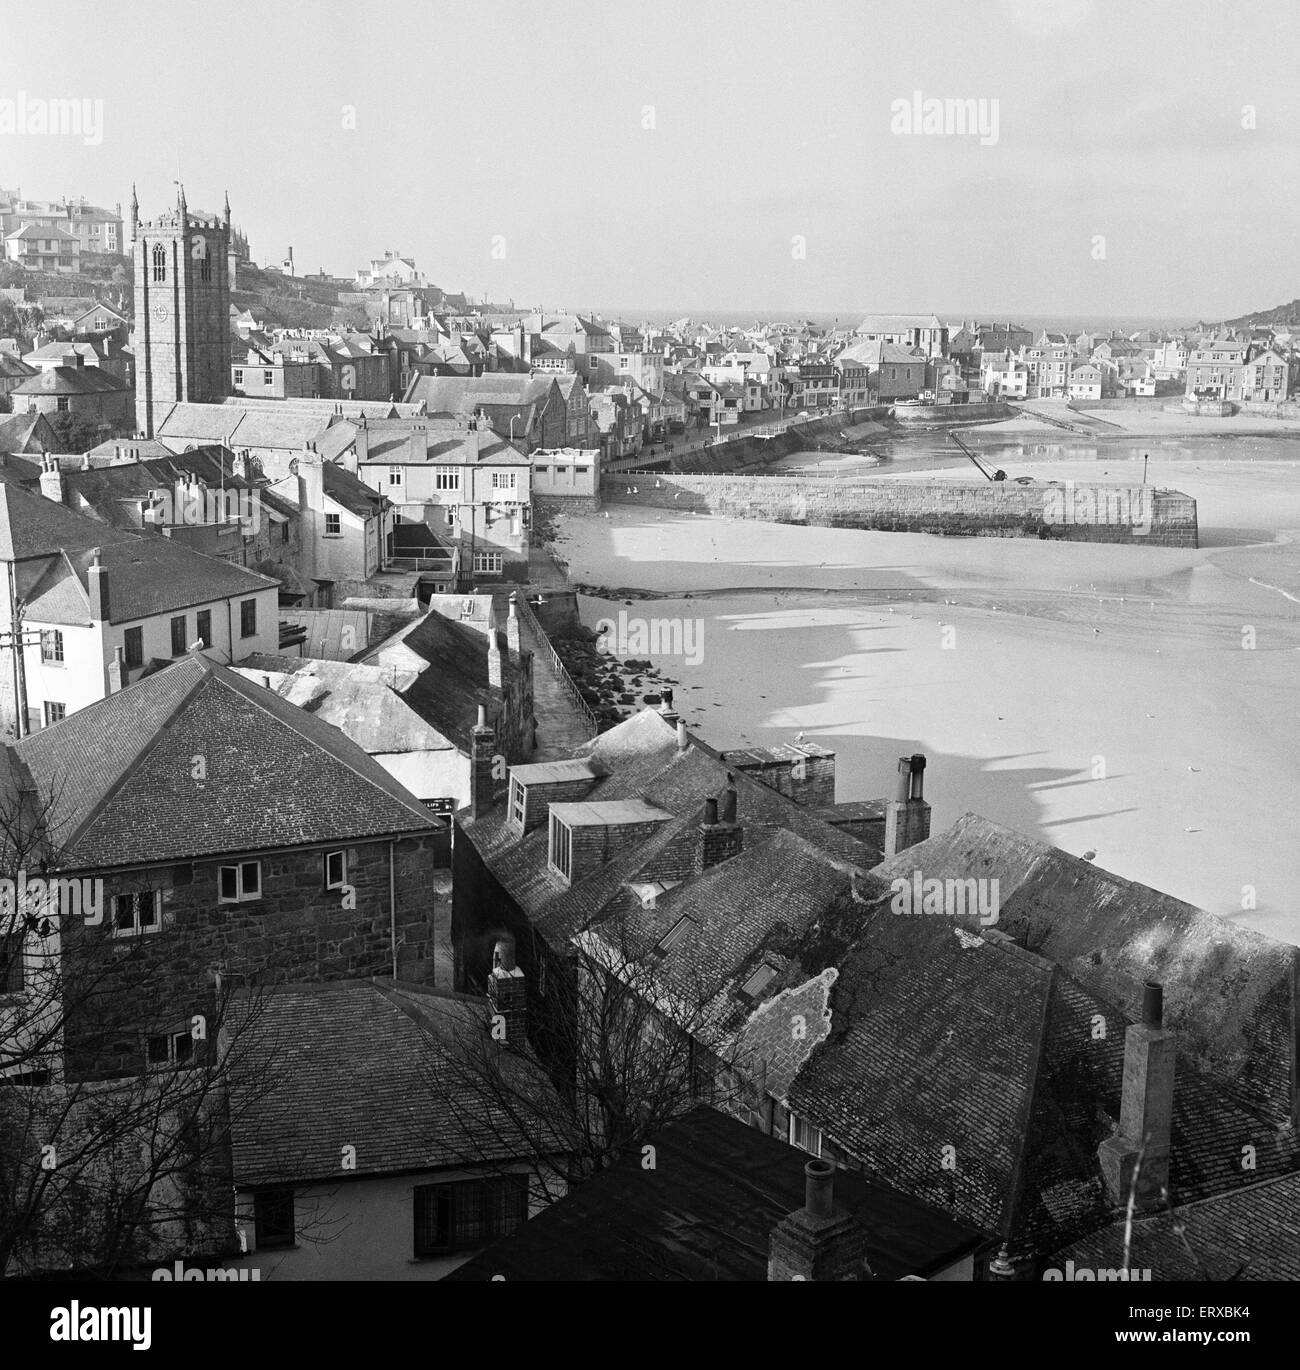 General view of St Ives, Cornwall. 15th February 1954. - Stock Image